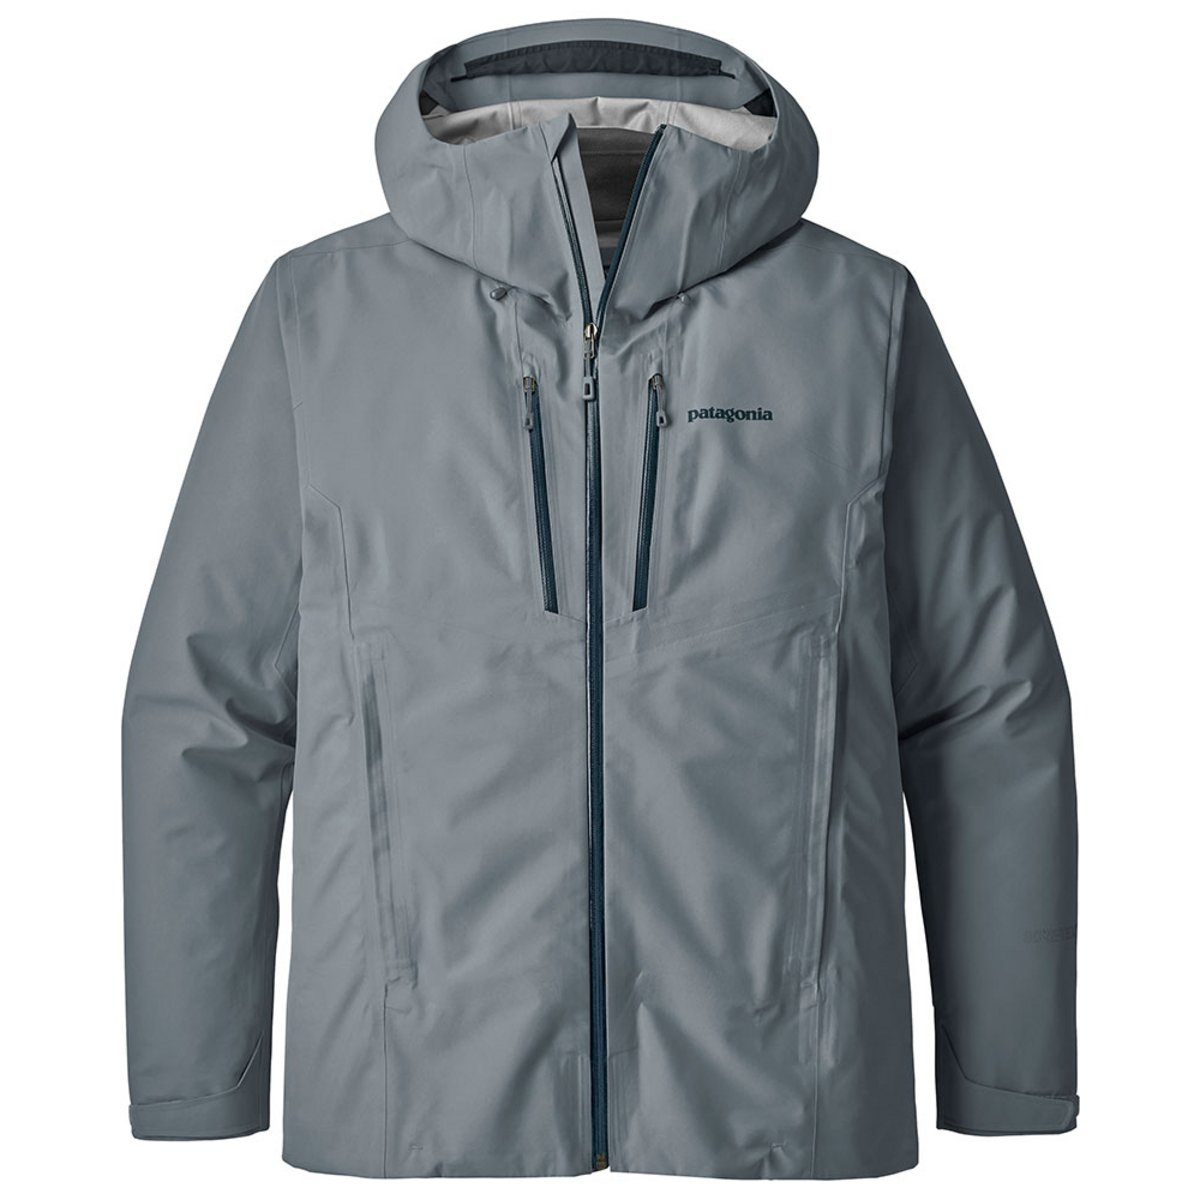 Patagonia Men's Triolet GORE-TEX Jacket 0